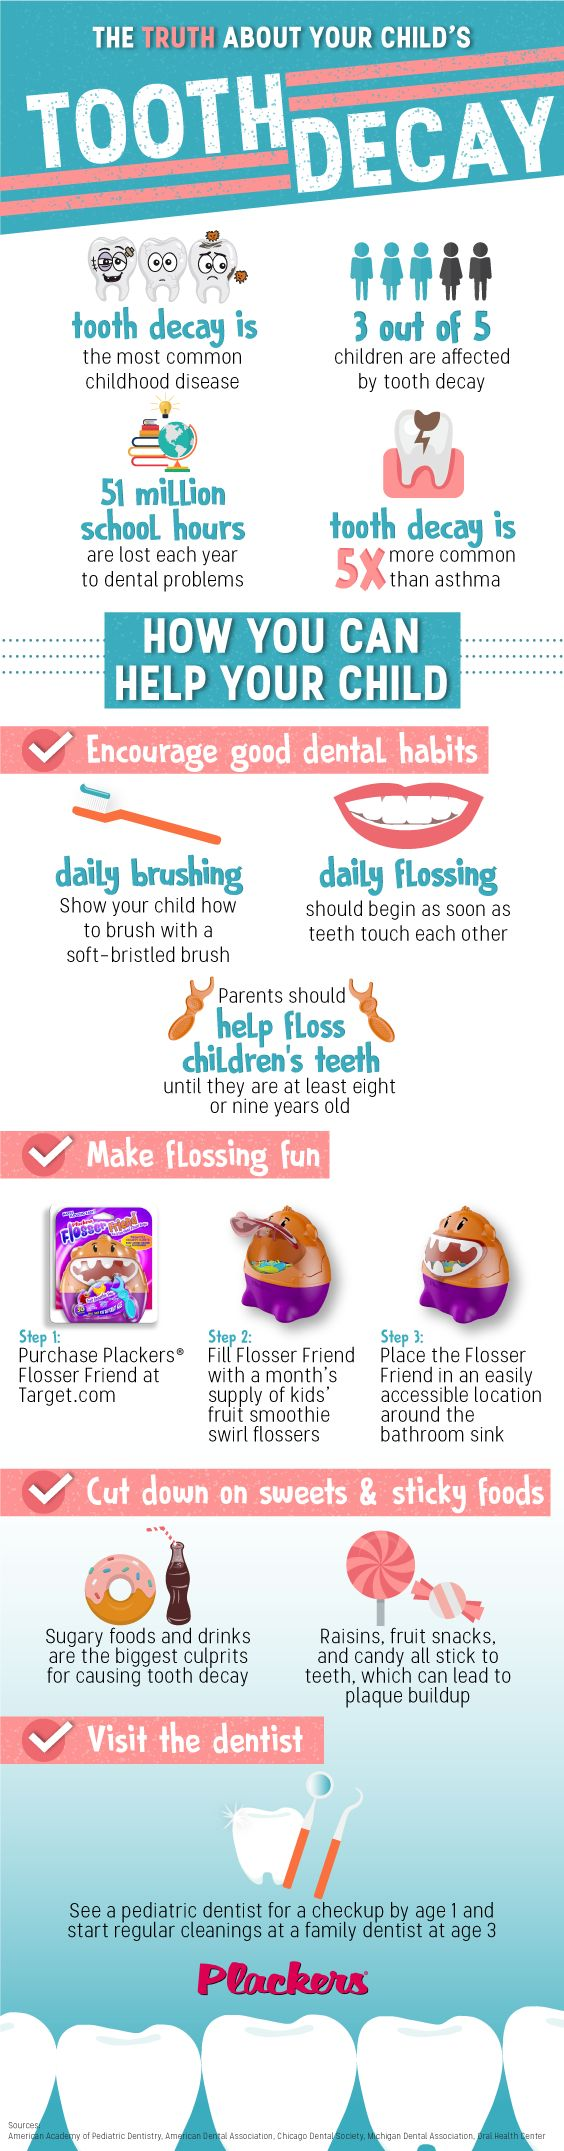 Did you know childhood tooth decay is the number one chronic childhood illness? Check out this infographic for tips to keep kids' teeth clean and mouths healthy!